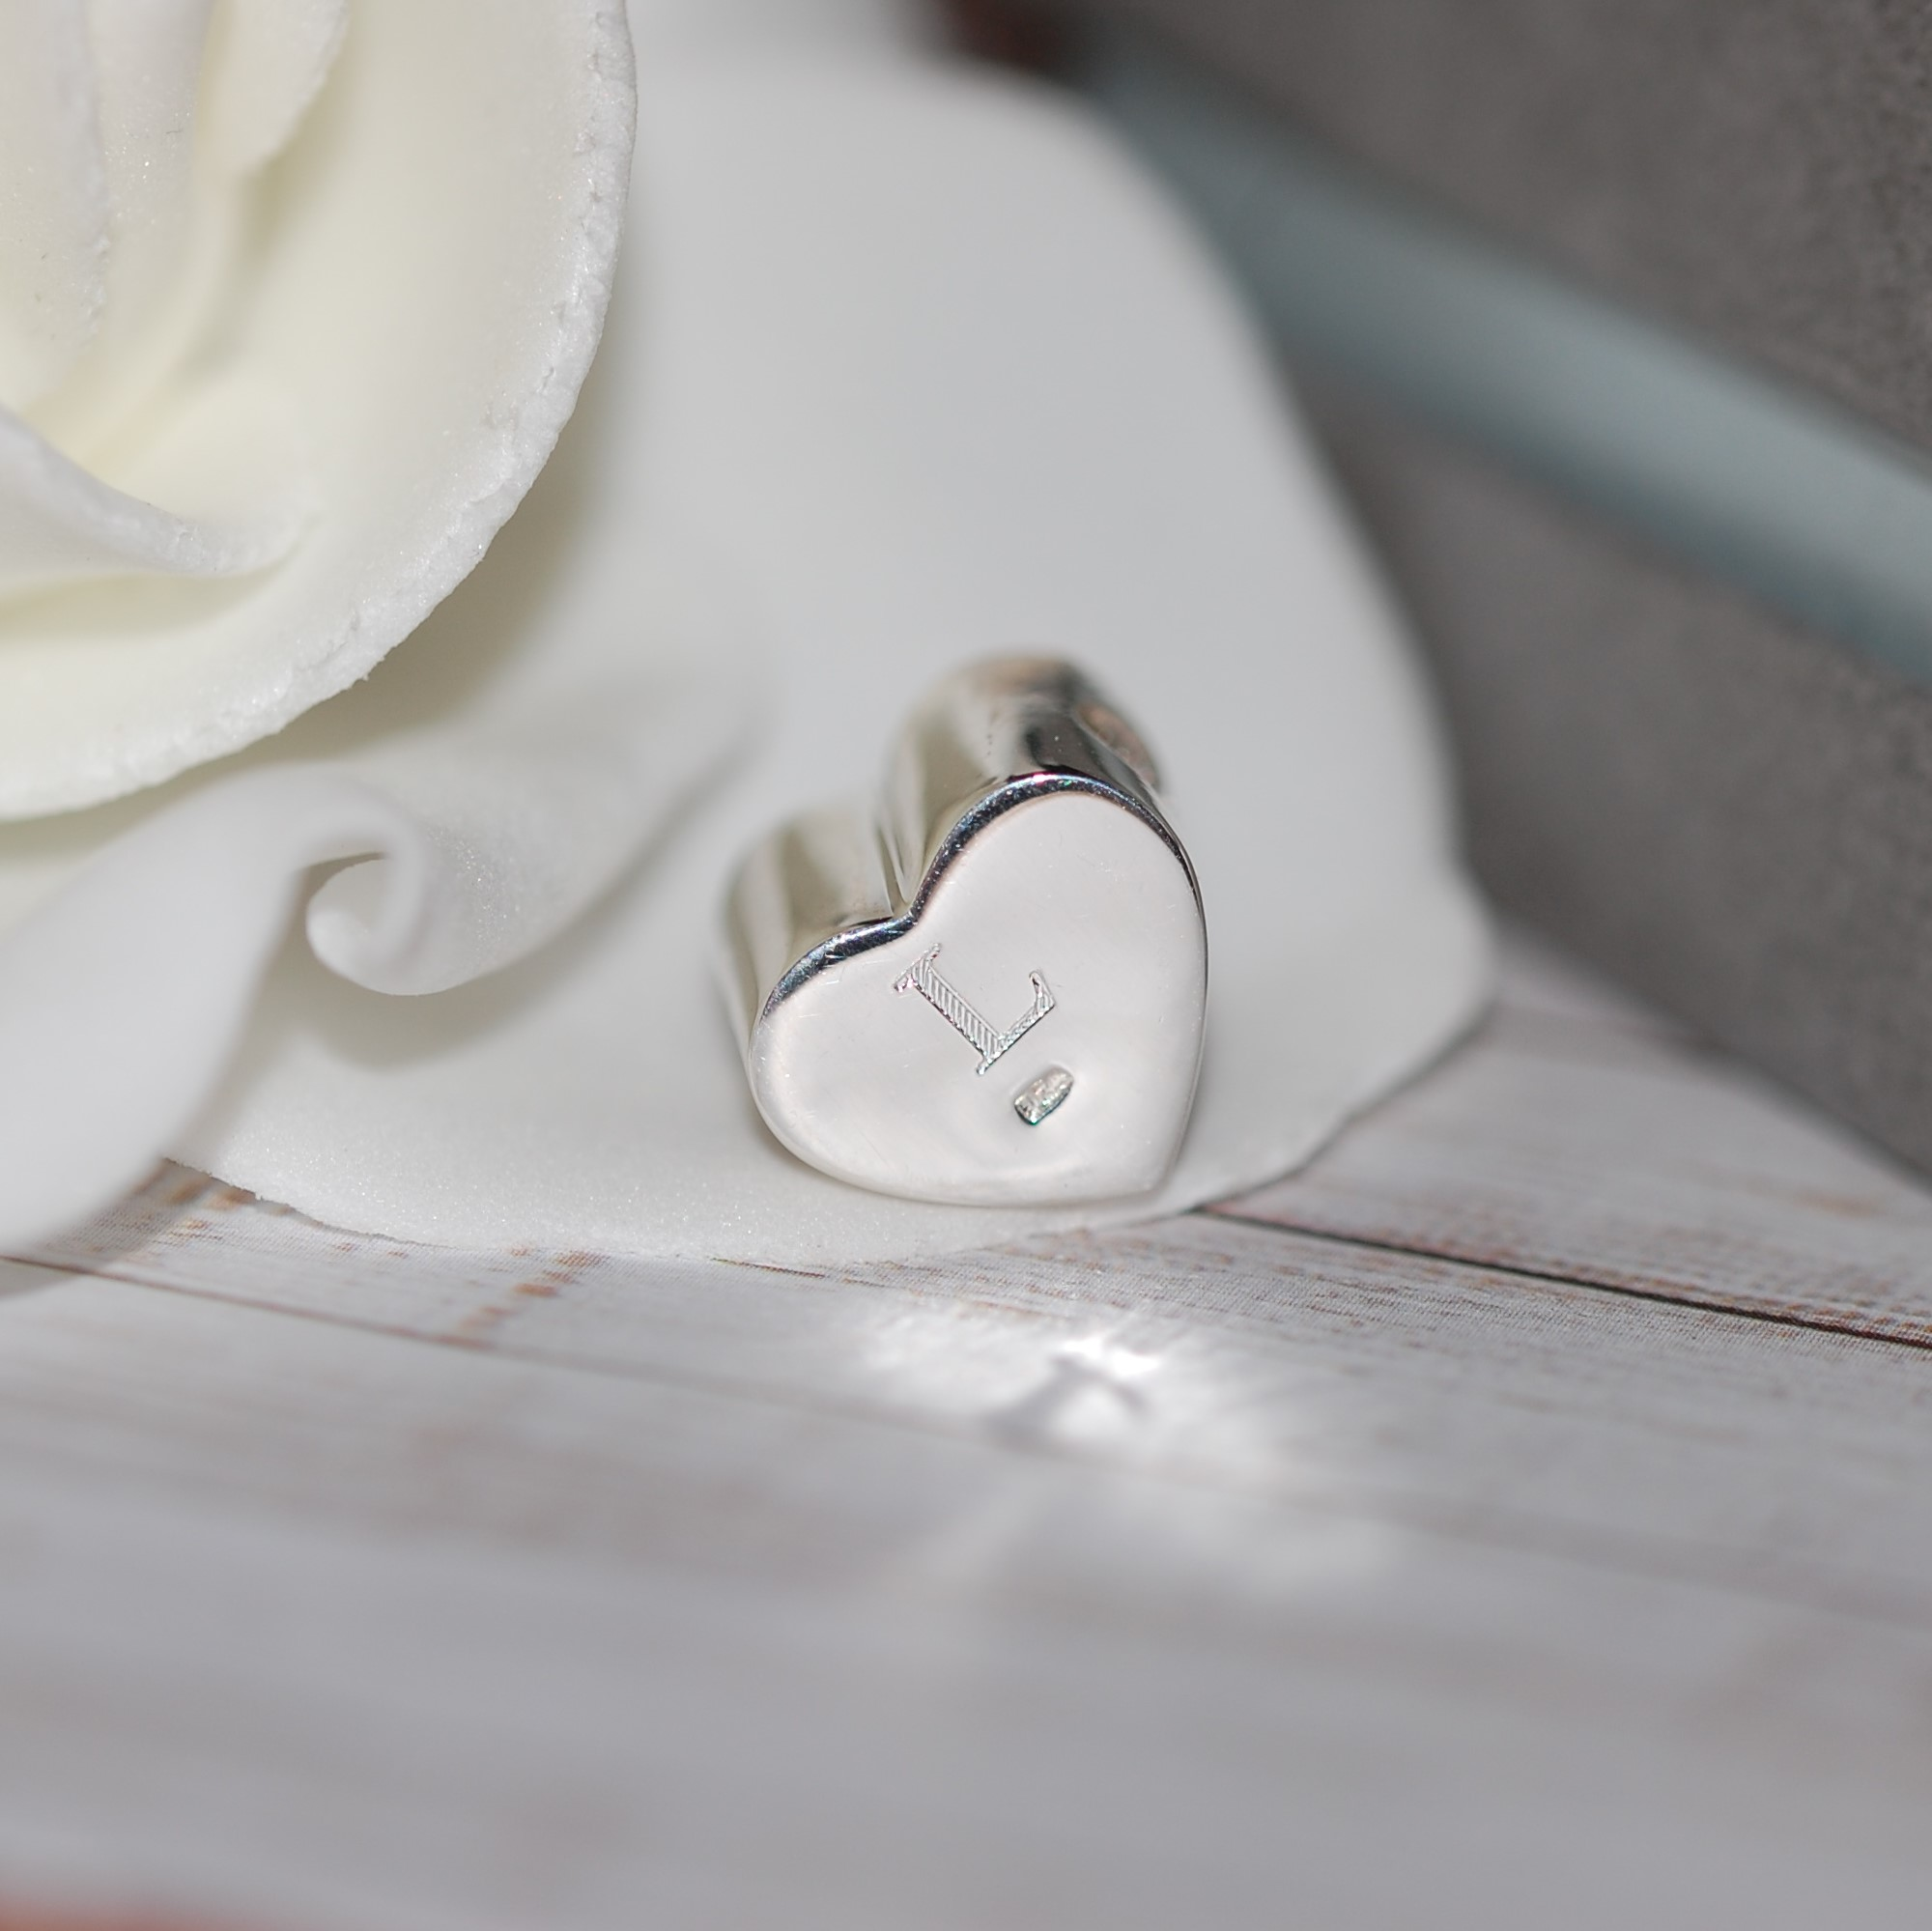 The letter L engraved on the back of sterling silver charm bead with cremation ashes